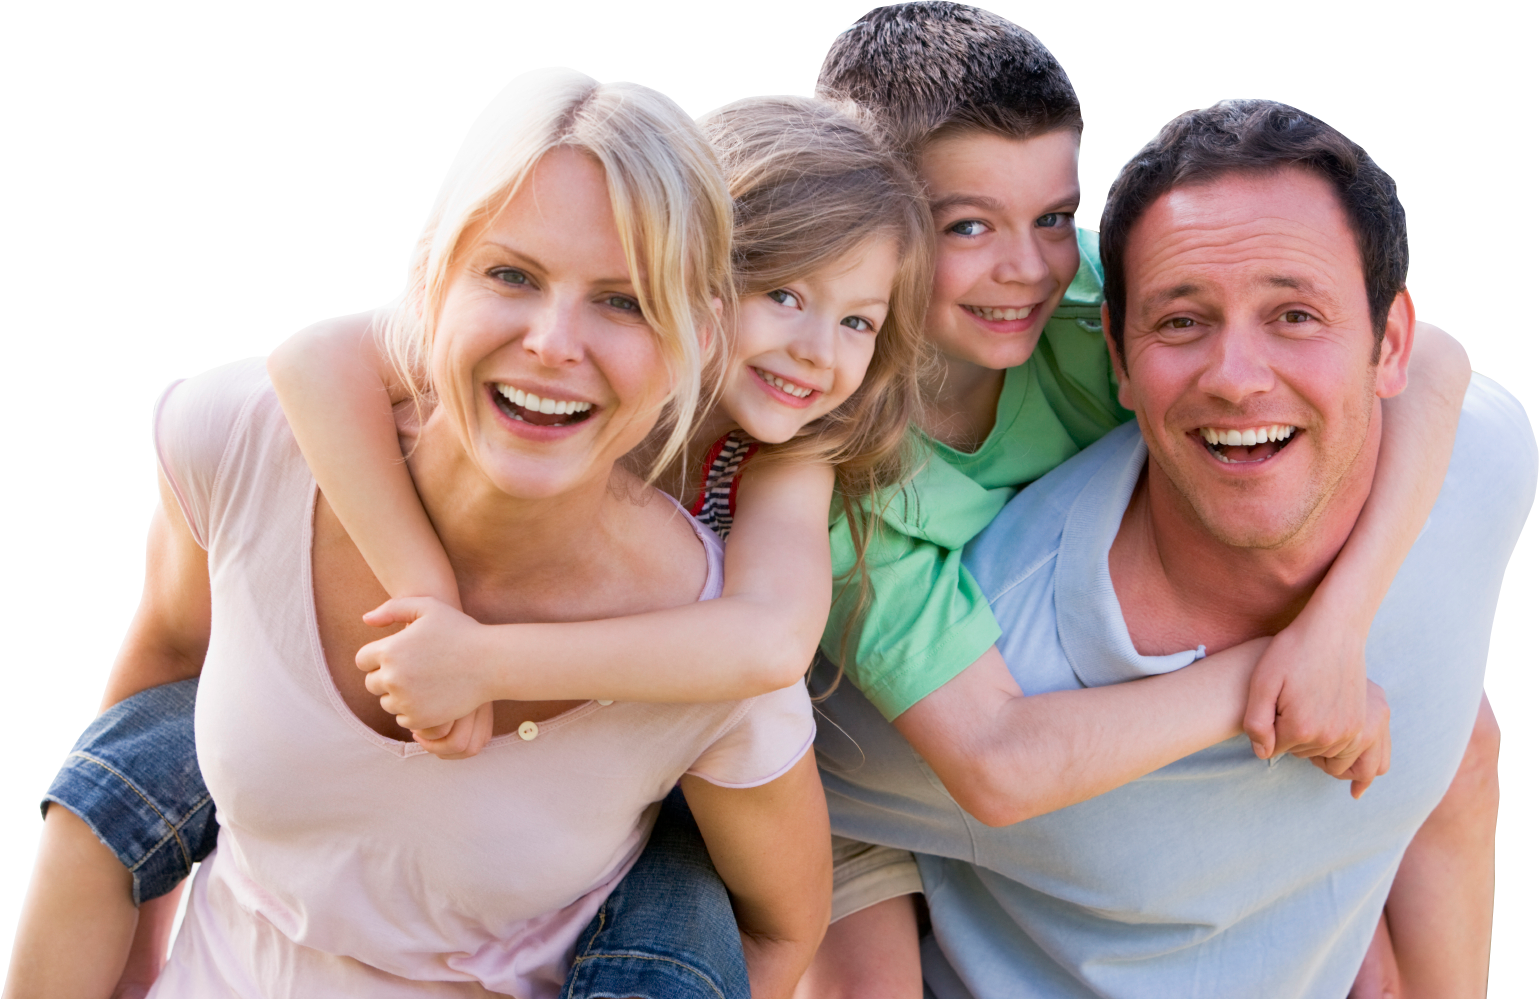 Family PNG Image - Family PNG HD